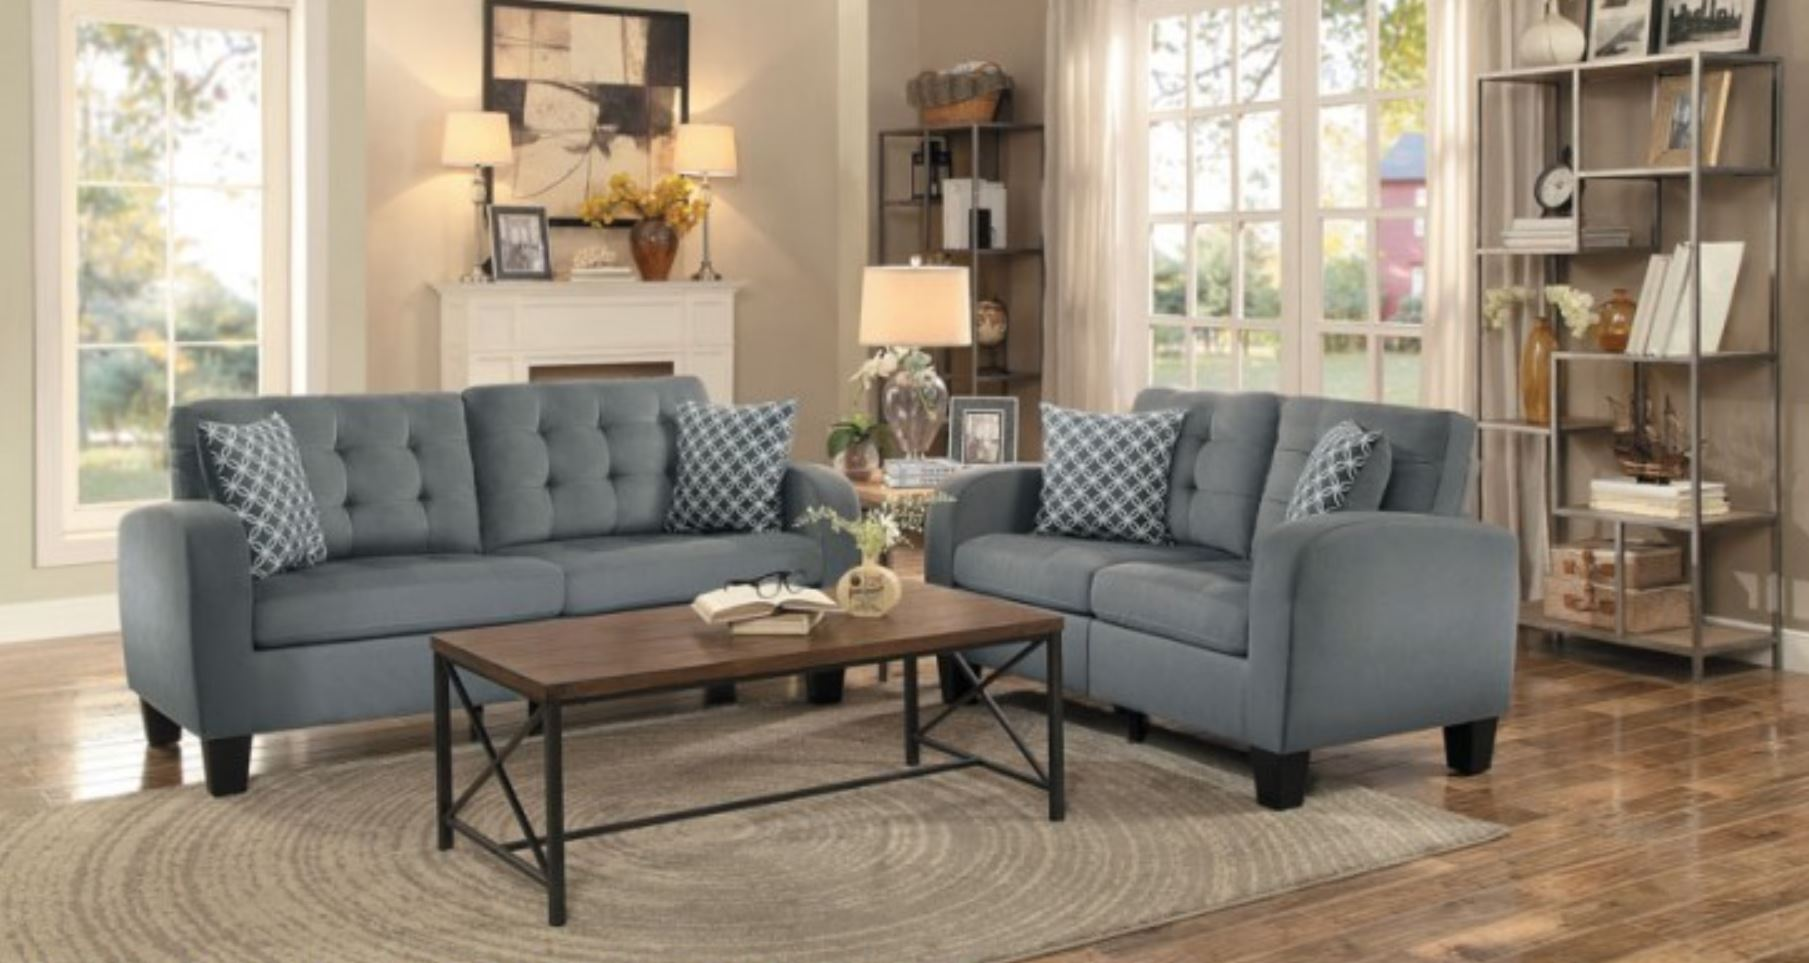 Shade Living Room Set